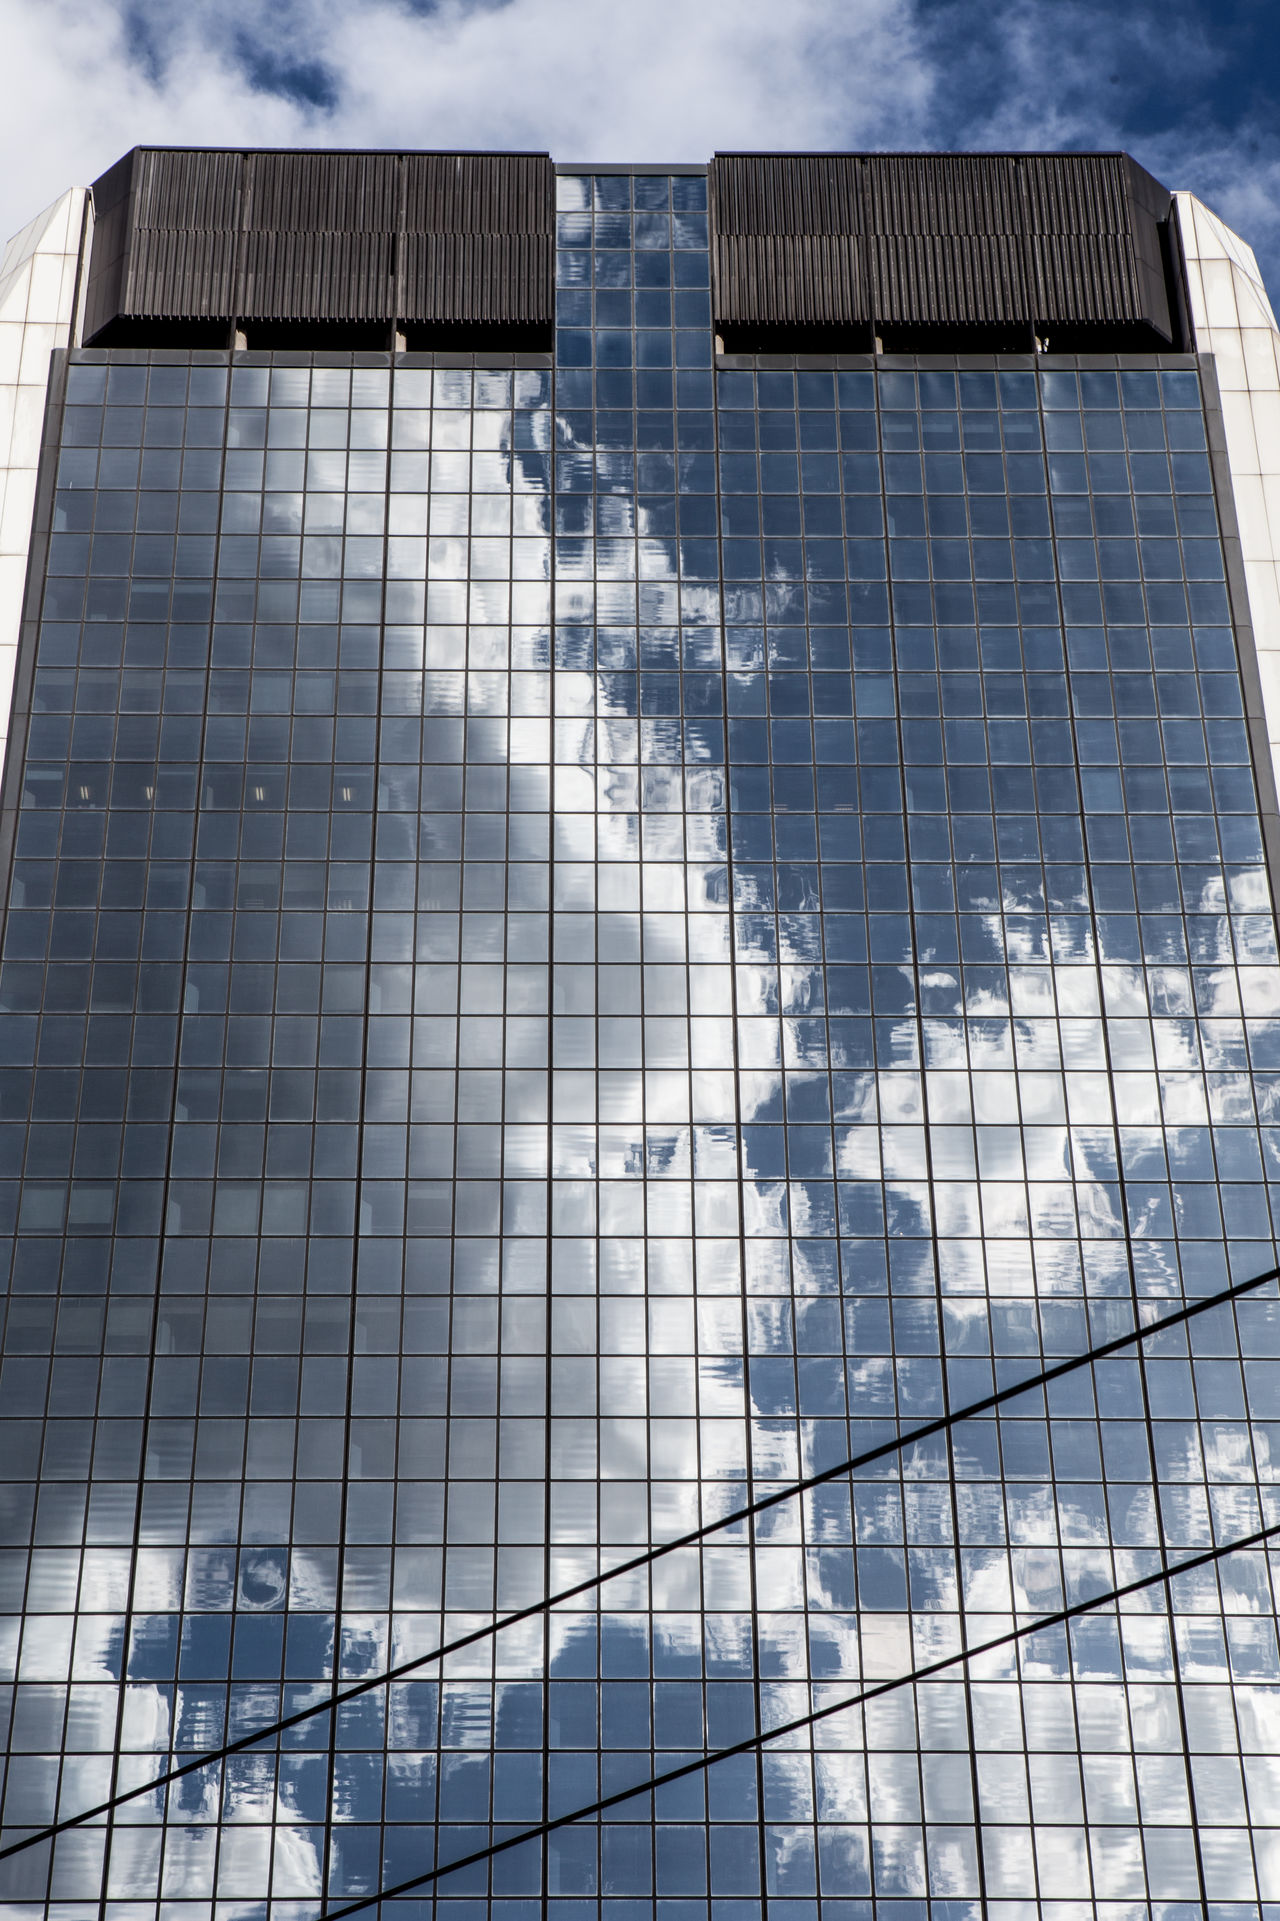 WTC Genova Architecture Building Exterior City Clouds Clouds And Sky Day EyeEm Best Shots EyeEm Gallery Grid No People Office Building Exterior Outdoors Reflection Sky Sky And Clouds Skyscraper Skyscrapers Skyscrapers In The Clouds Solar Panel